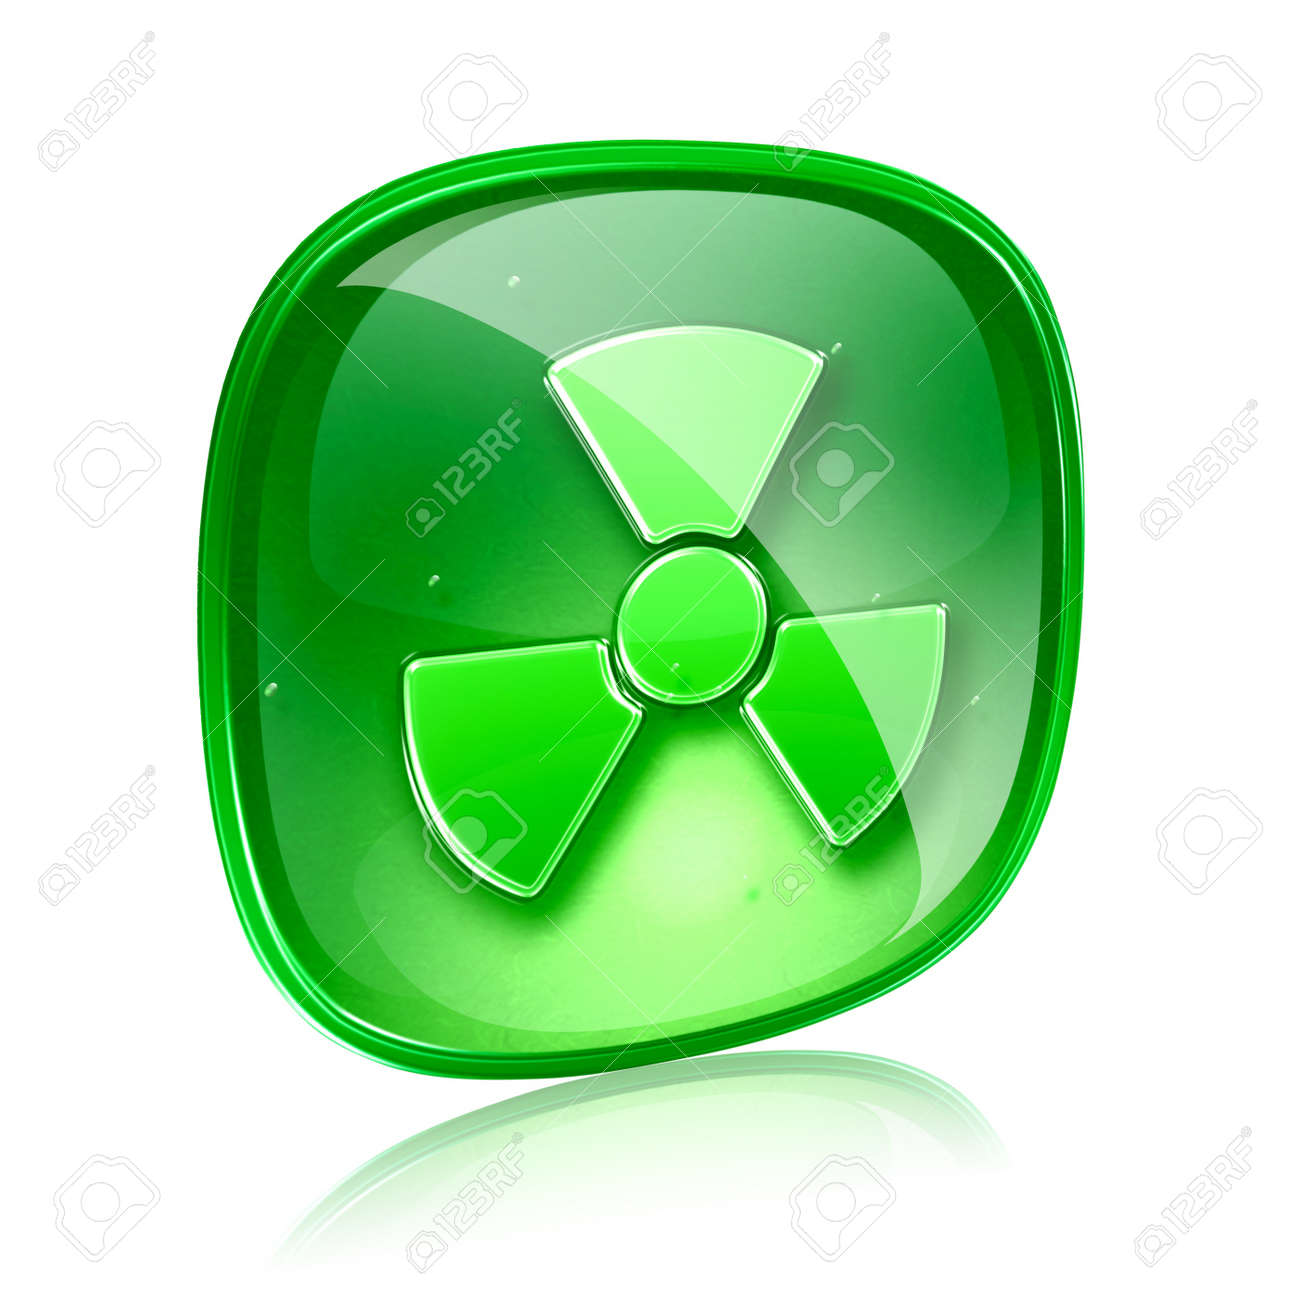 Radioactive icon green glass, isolated on white background. Stock Photo - 15916677